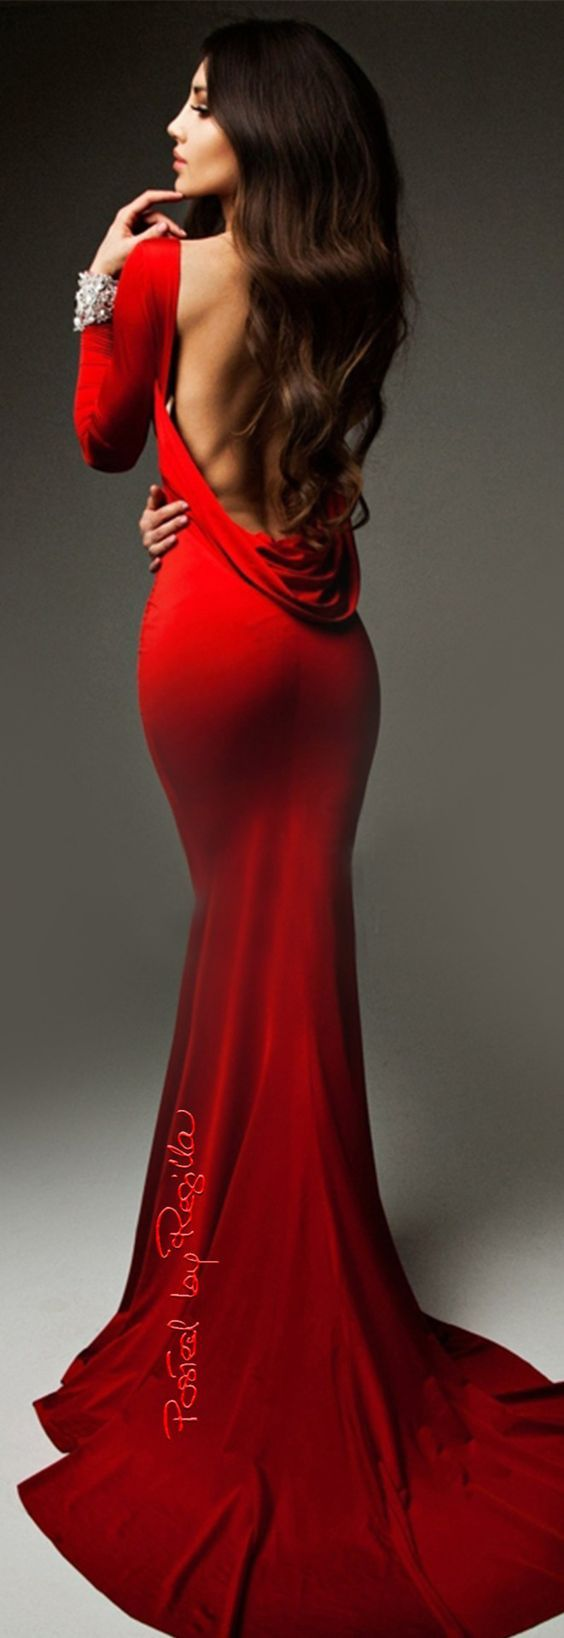 Backless red dress fashion style u poses pinterest gowns